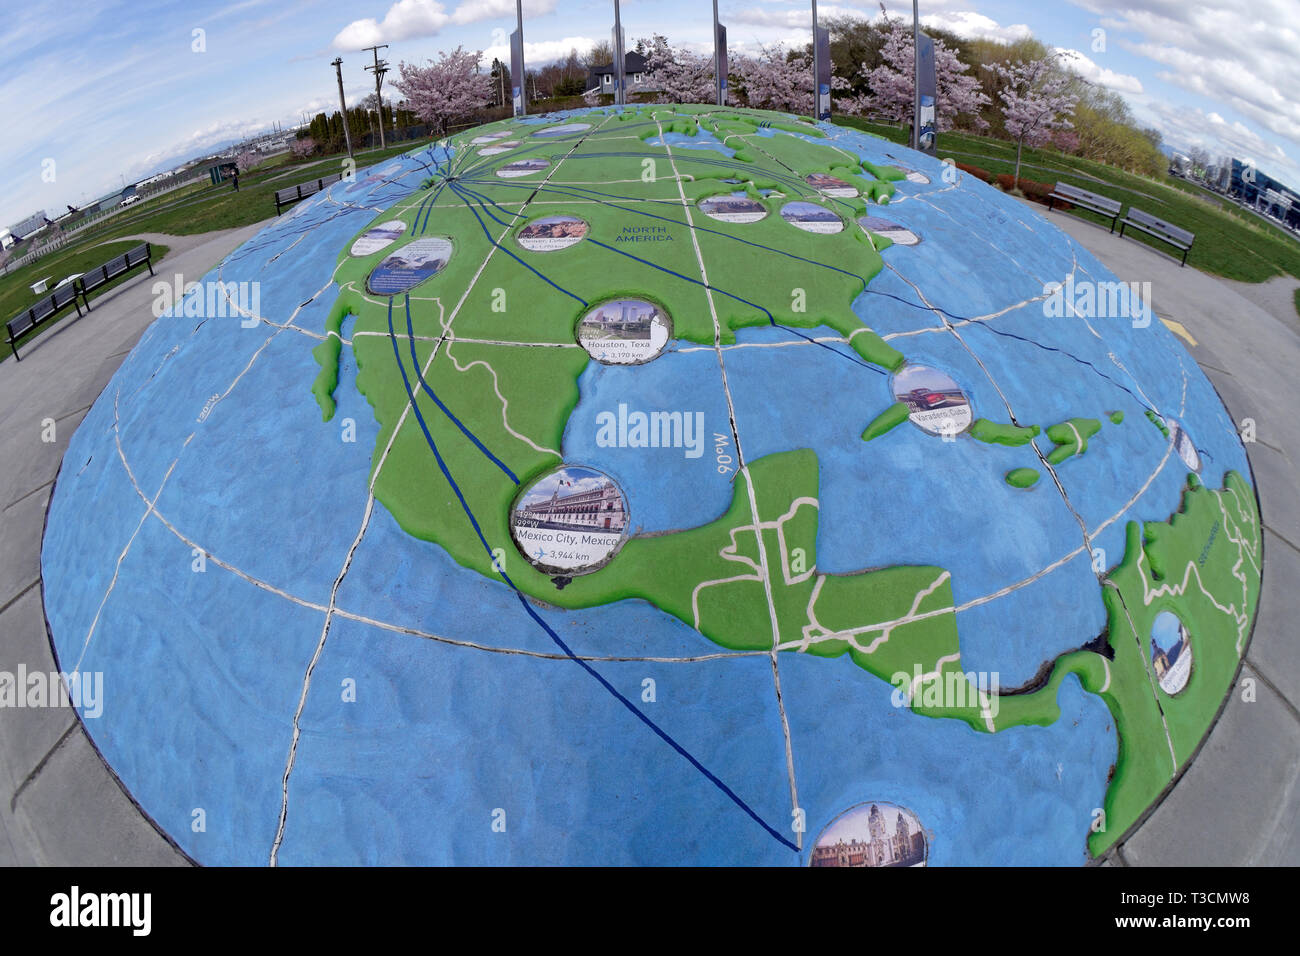 Fsheye view of three dimensional map of the world showing the Americas  in Larry Berg Flight Path Park, Richmond, BC, Canada Stock Photo